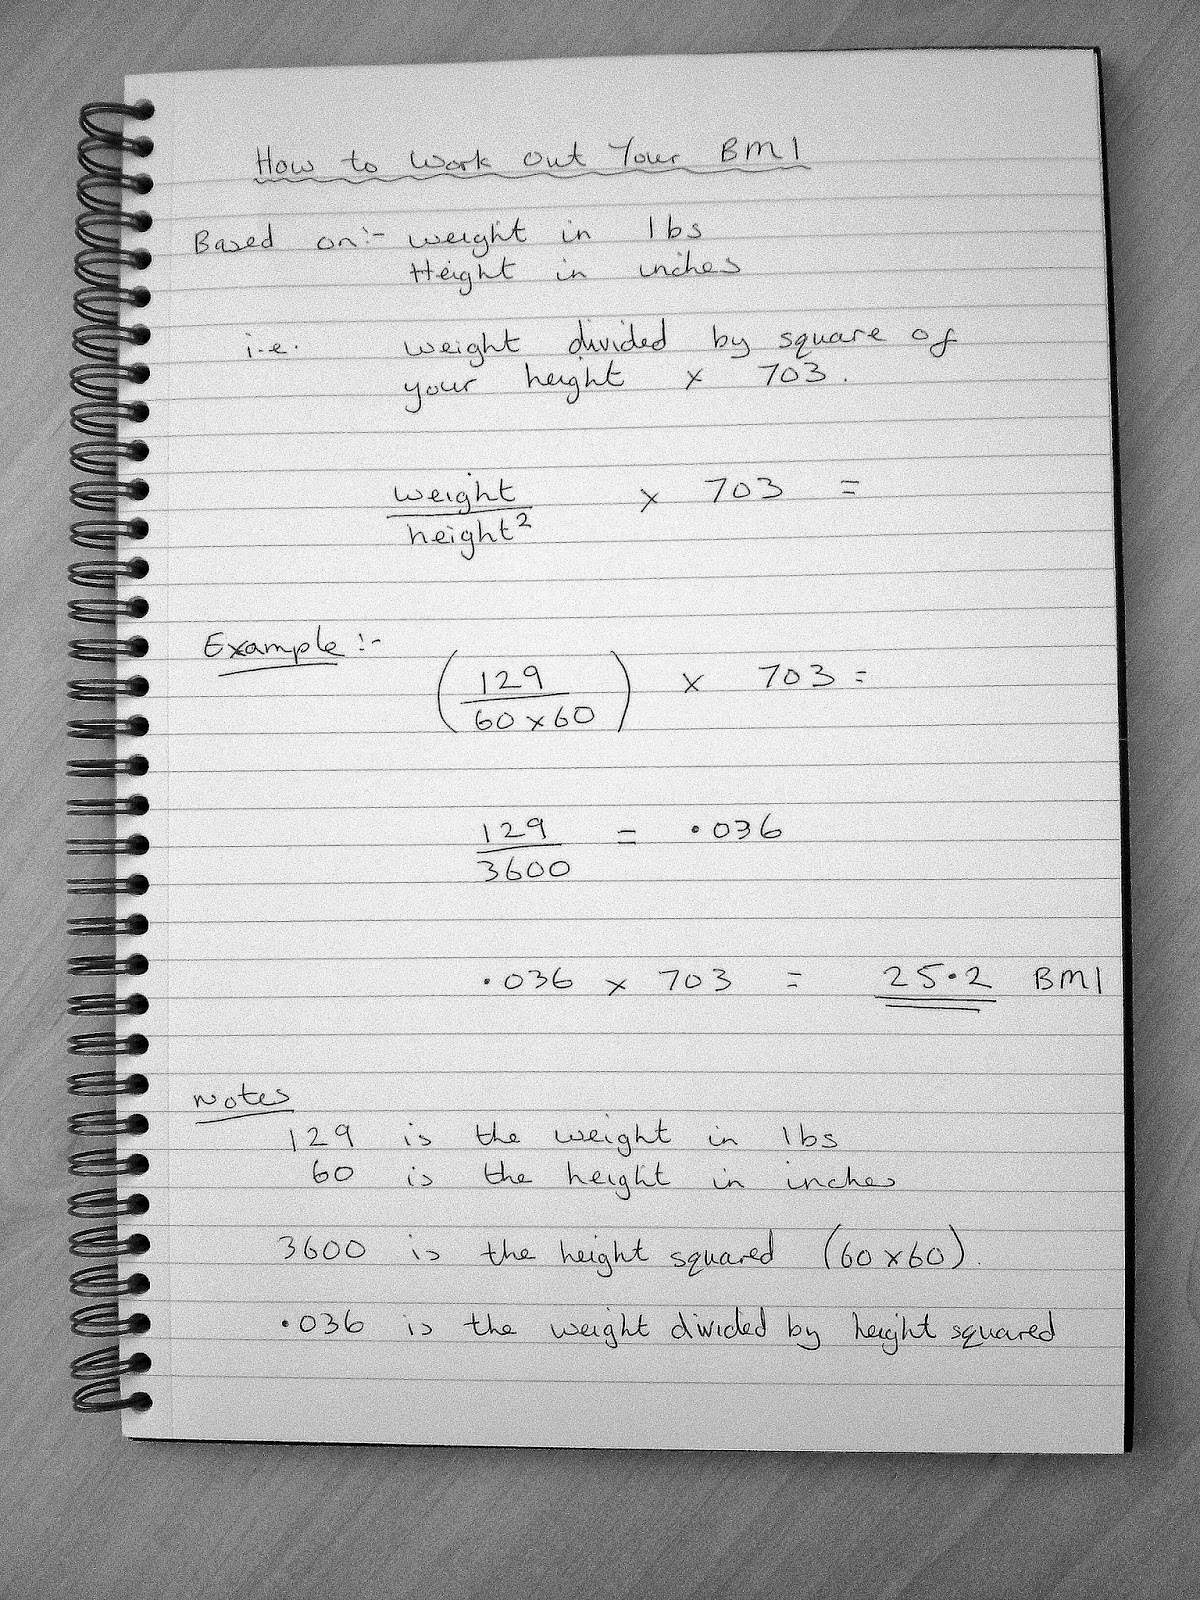 Example Of Formula For How To Work Out Your Bmi Body Mass Index Weight  Divided